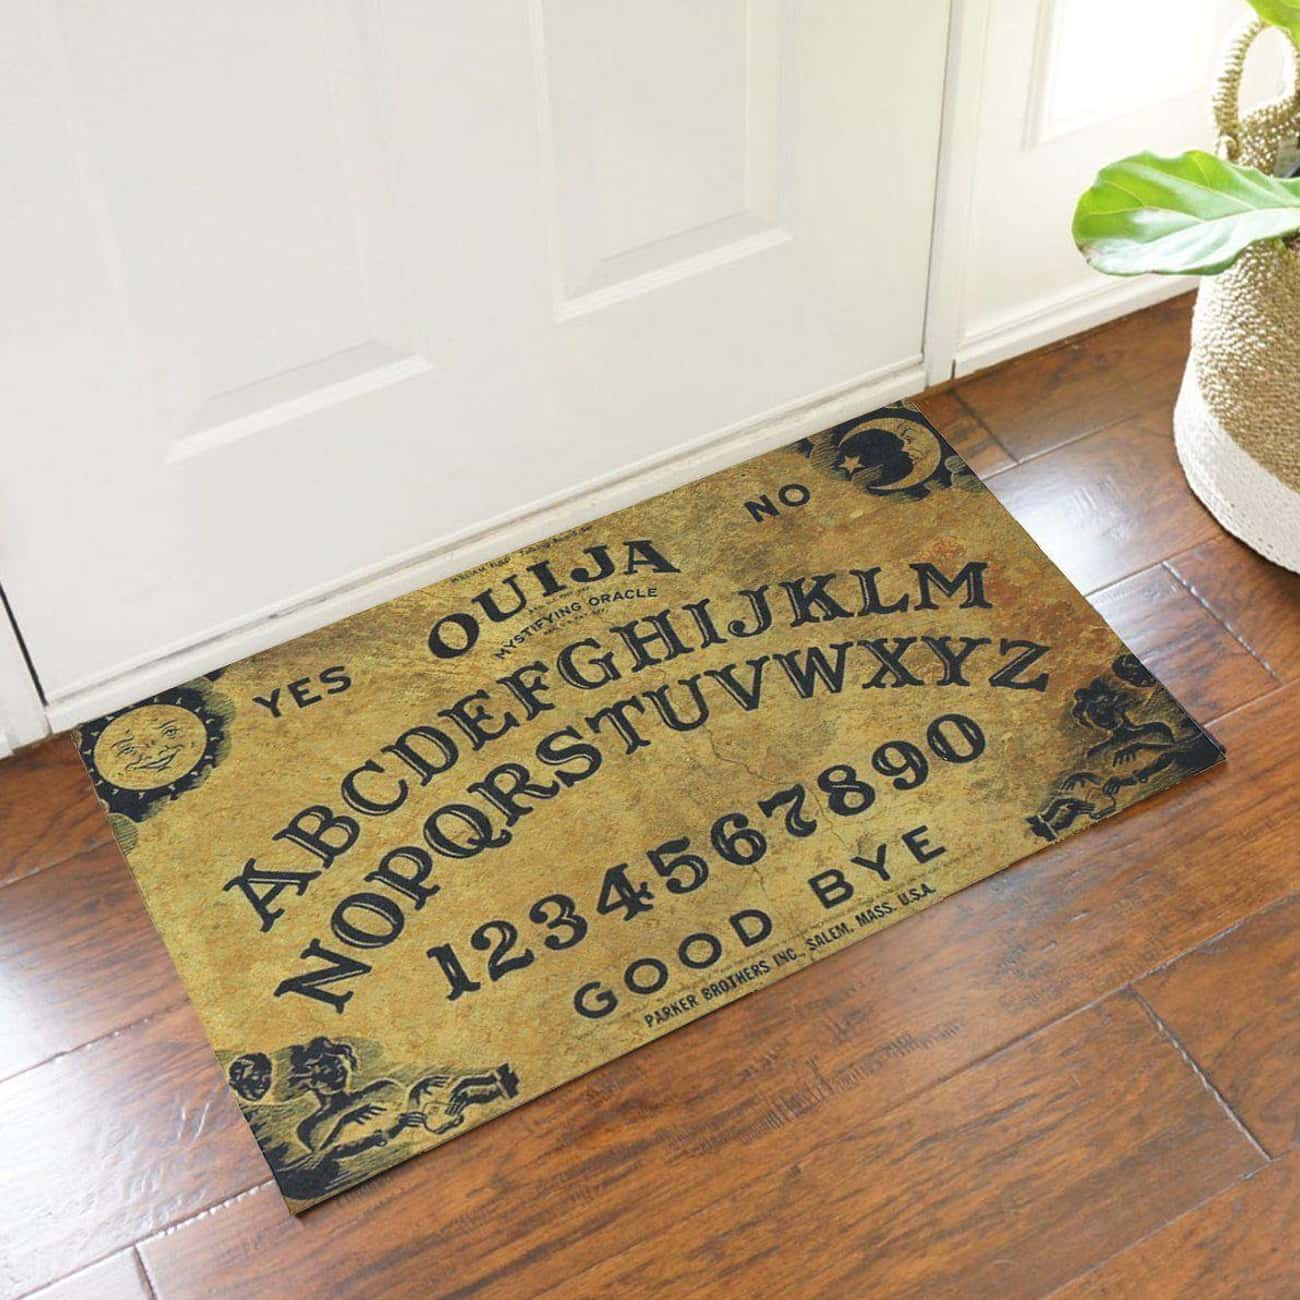 Ouiji Board Doormat is listed (or ranked) 3 on the list Unusual Gifts Perfect For People Who Love Any And All Things Creepy